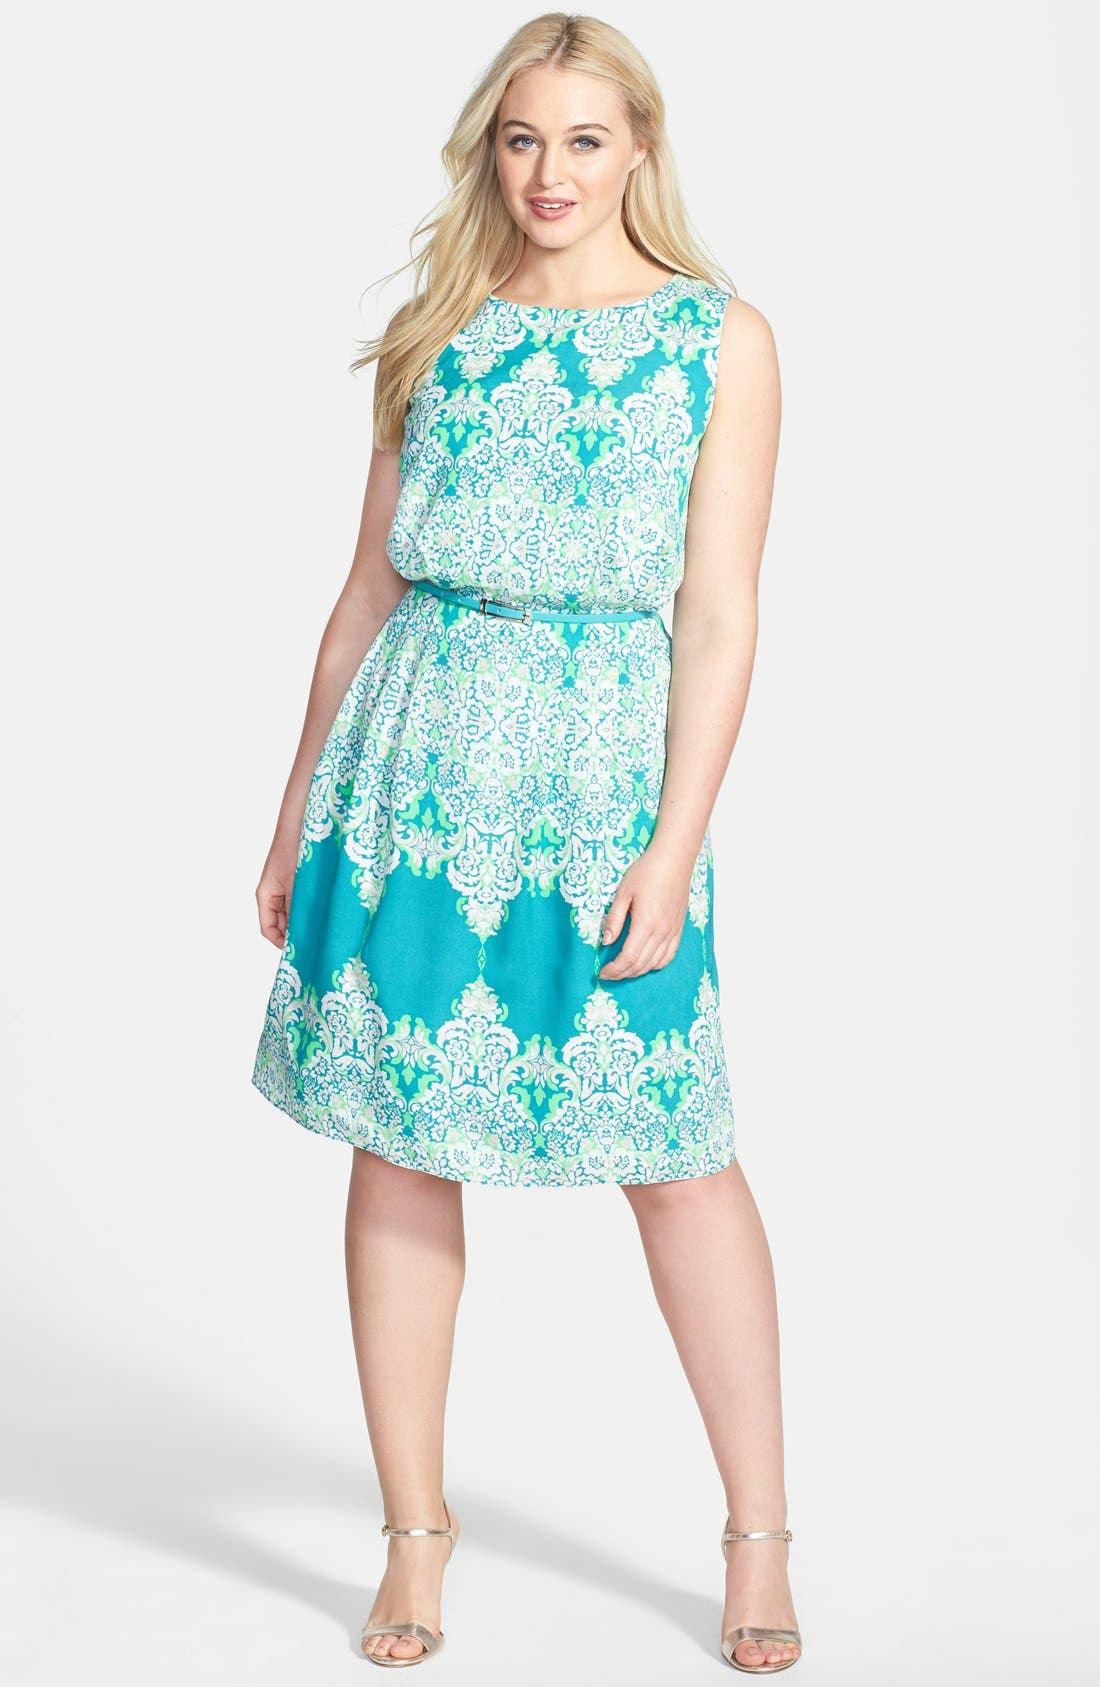 Alternate Image 1 Selected - Adrianna Papell Print Belted Sleeveless Crêpe de Chine Dress (Plus Size)